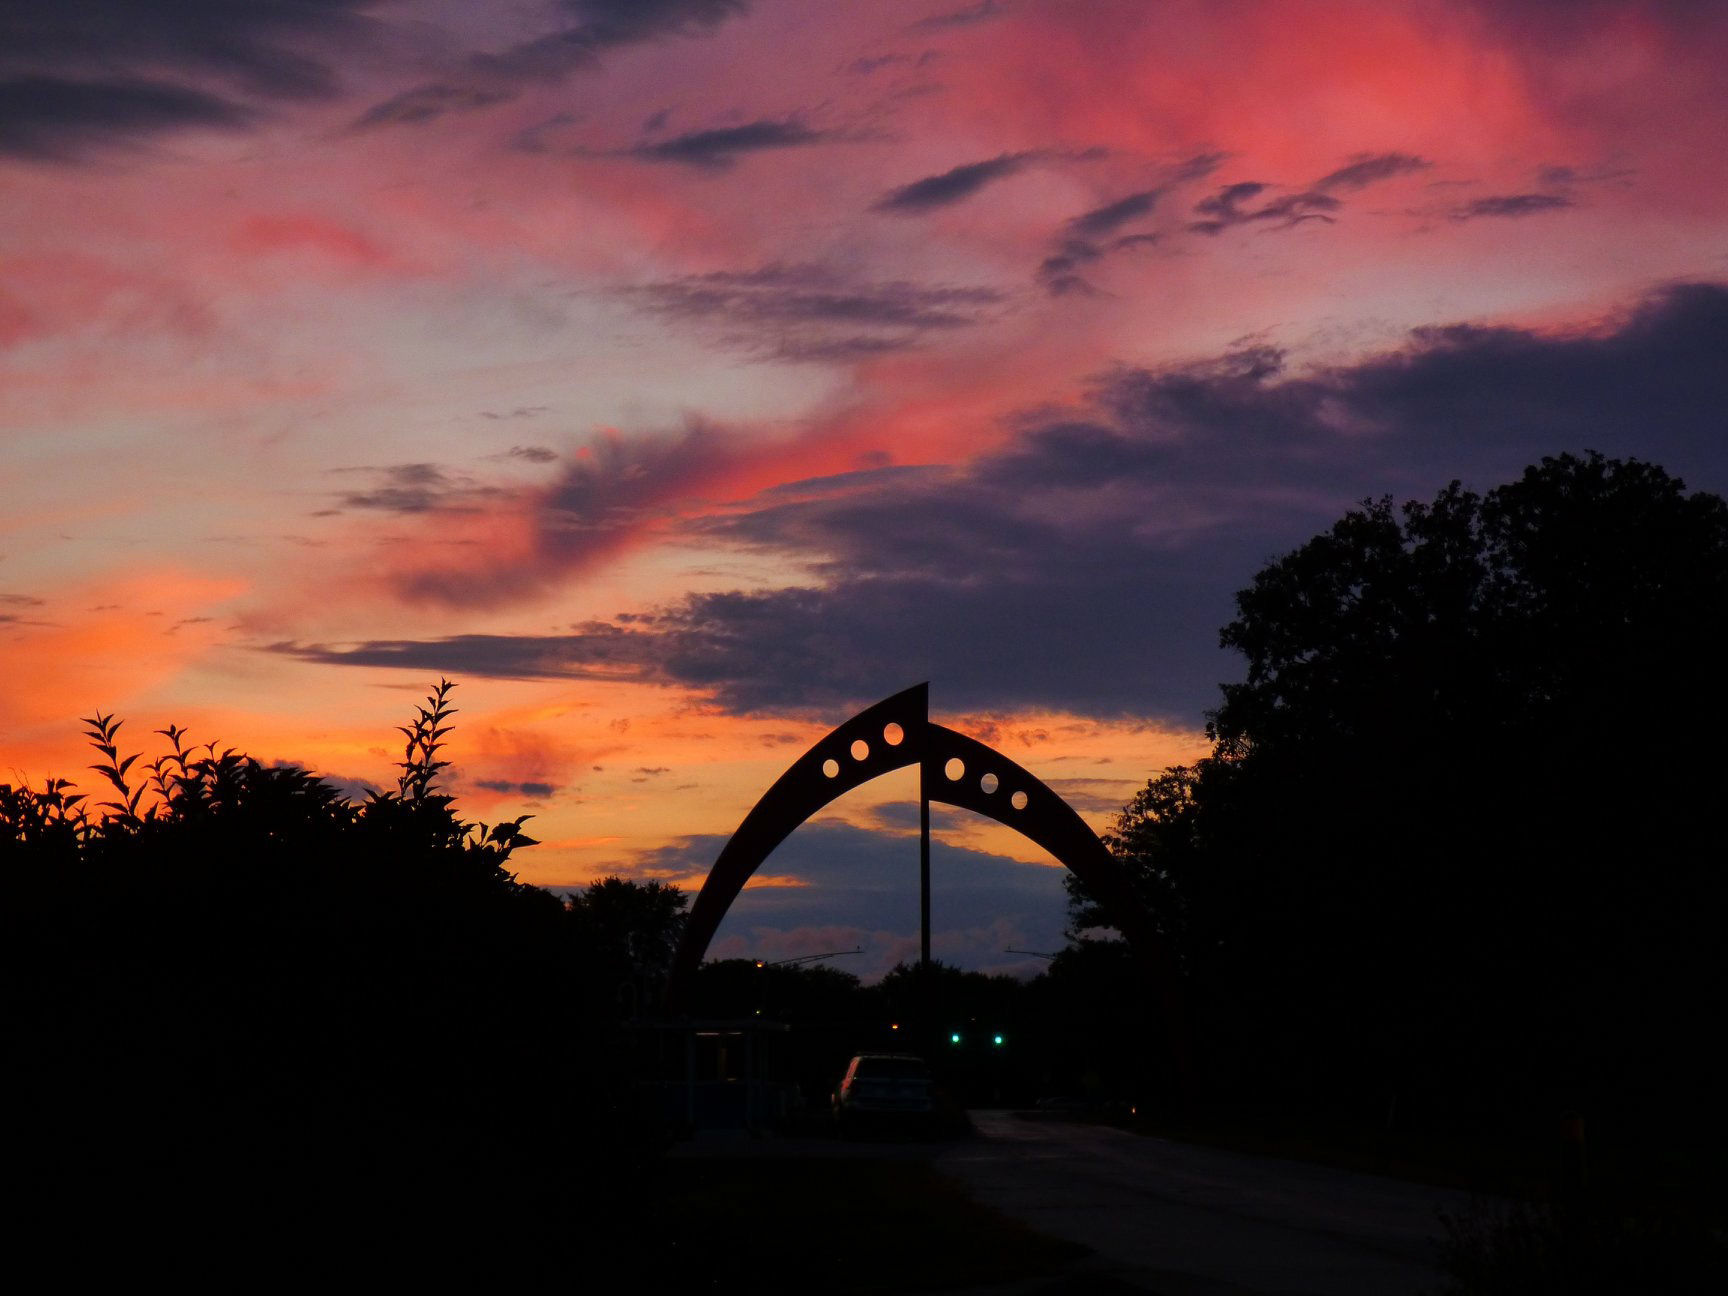 Sun sets over Broken Symmetry on Sept. 25. sky, sunset, sun, sculpture, Broken Symmetry, landscape Photo: Amy Scroggins